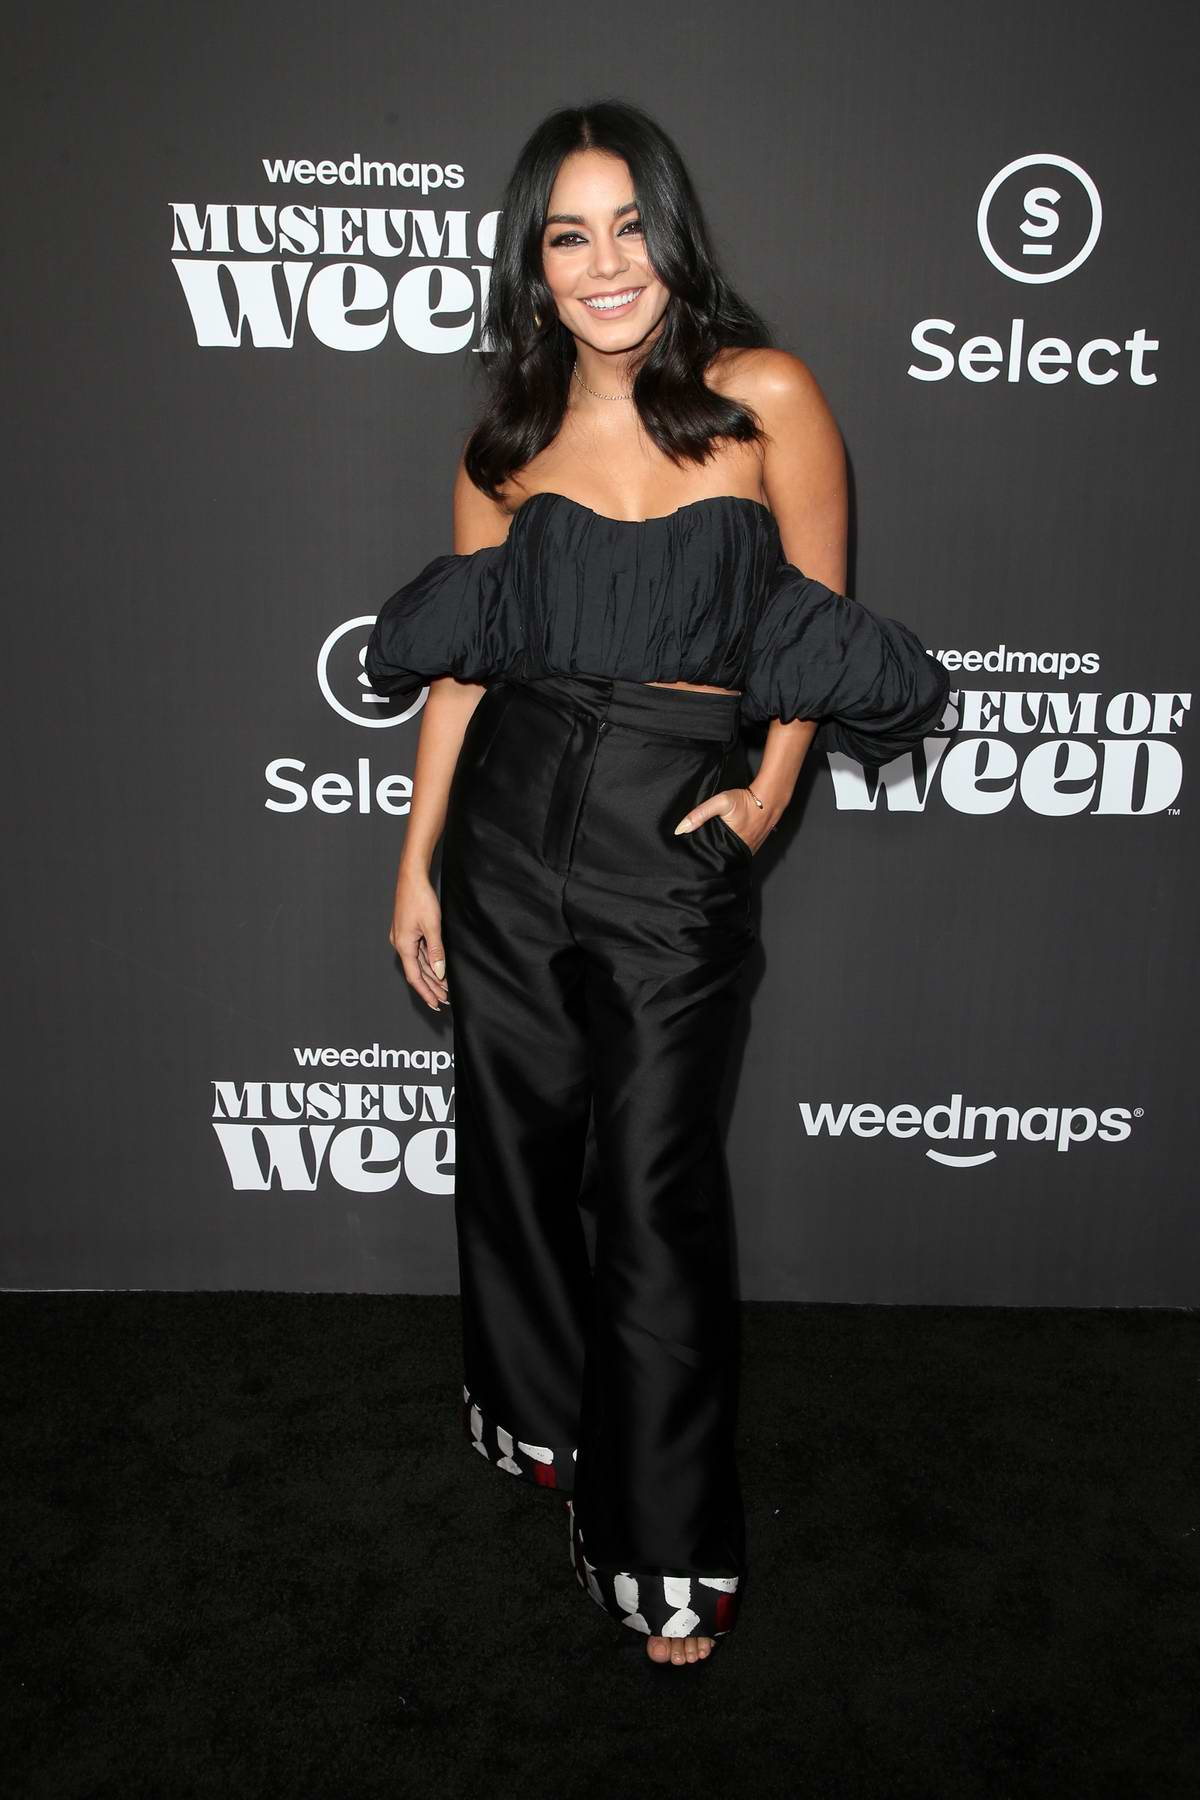 Vanessa Hudgens attends the Weedmaps Museum of Weed Exclusive Preview Celebration in Hollywood, California